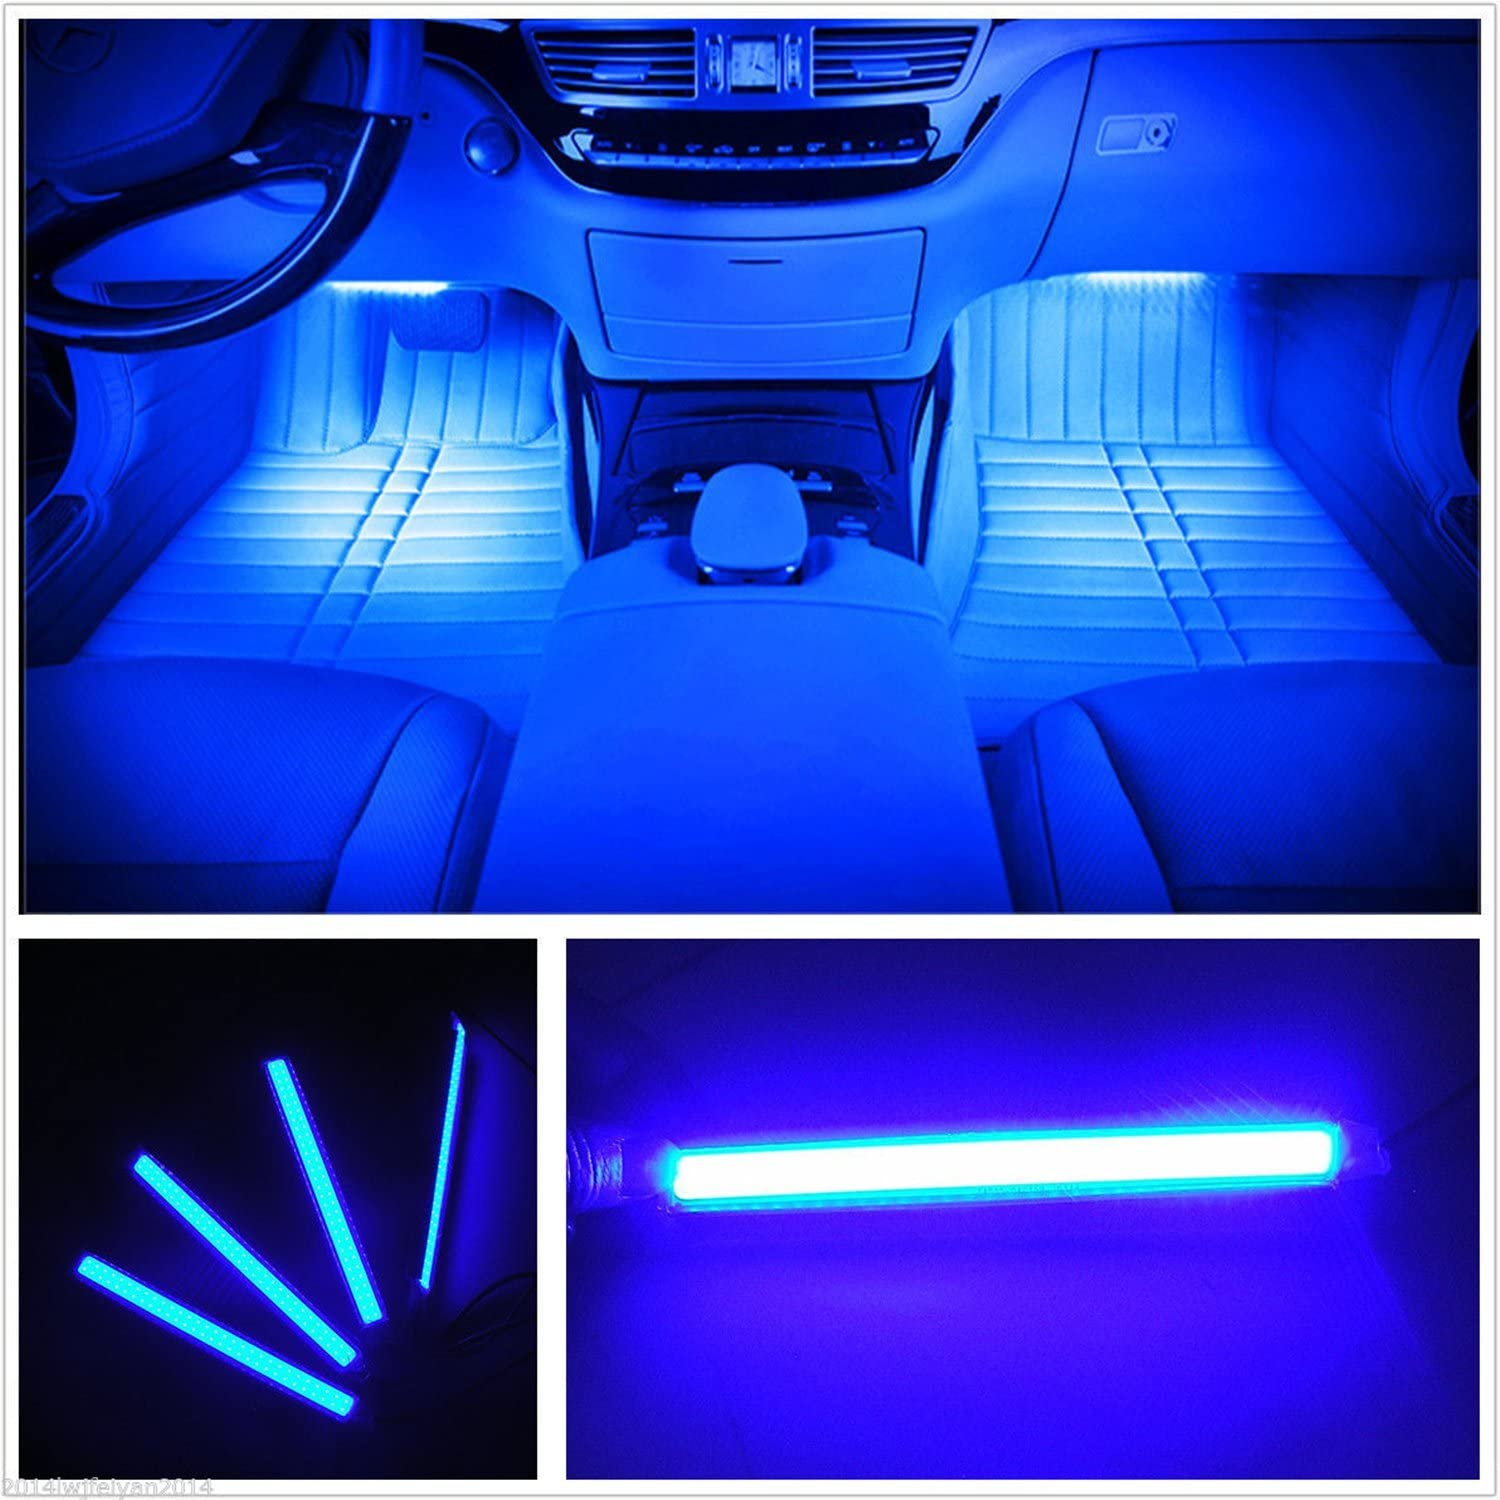 Amazon.com: Car LED Strip Light, EJ's SUPER CAR 4pcs 36 LED Car Interior  Lights Under Dash Lighting Waterproof Kit,Atmosphere Neon Lights Strip for  Car,DC 12V(Blue): Automotive